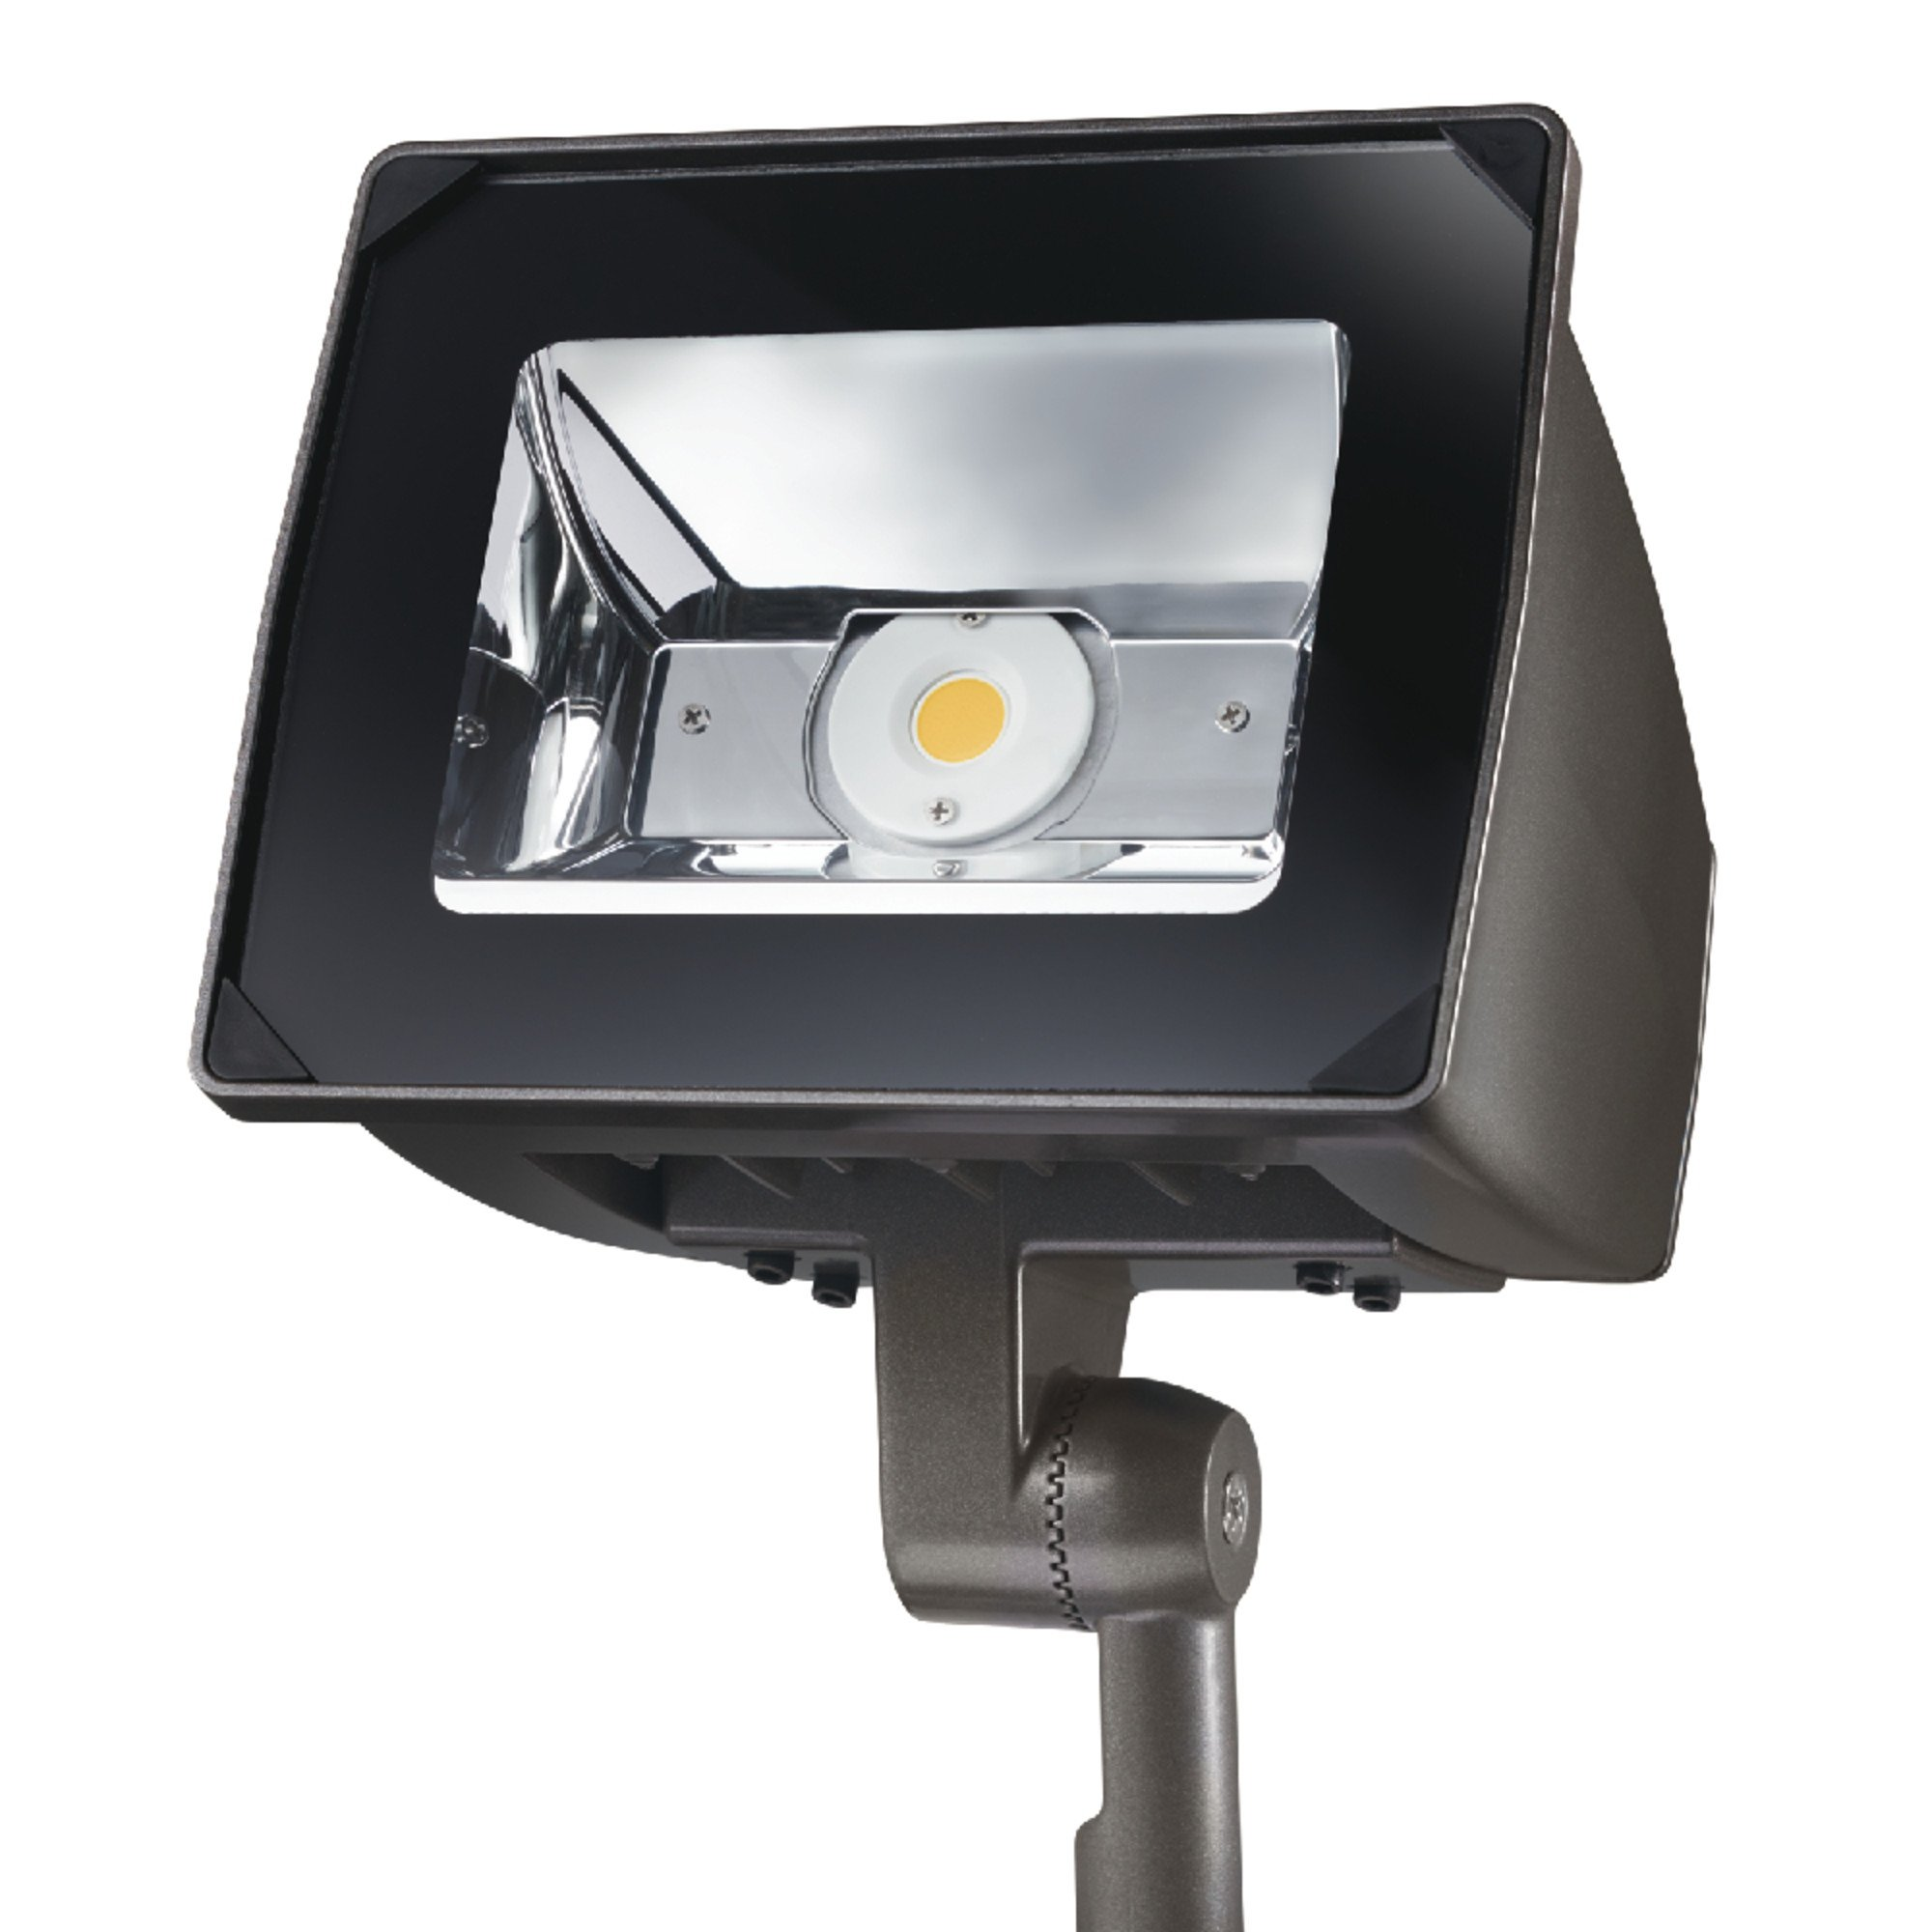 Lumark Nffld-S-C70-Knc-Unv Night Falcon 20W Carbon Outdoor Integrated LED Area Light with Knuckle Mounting, Bronze